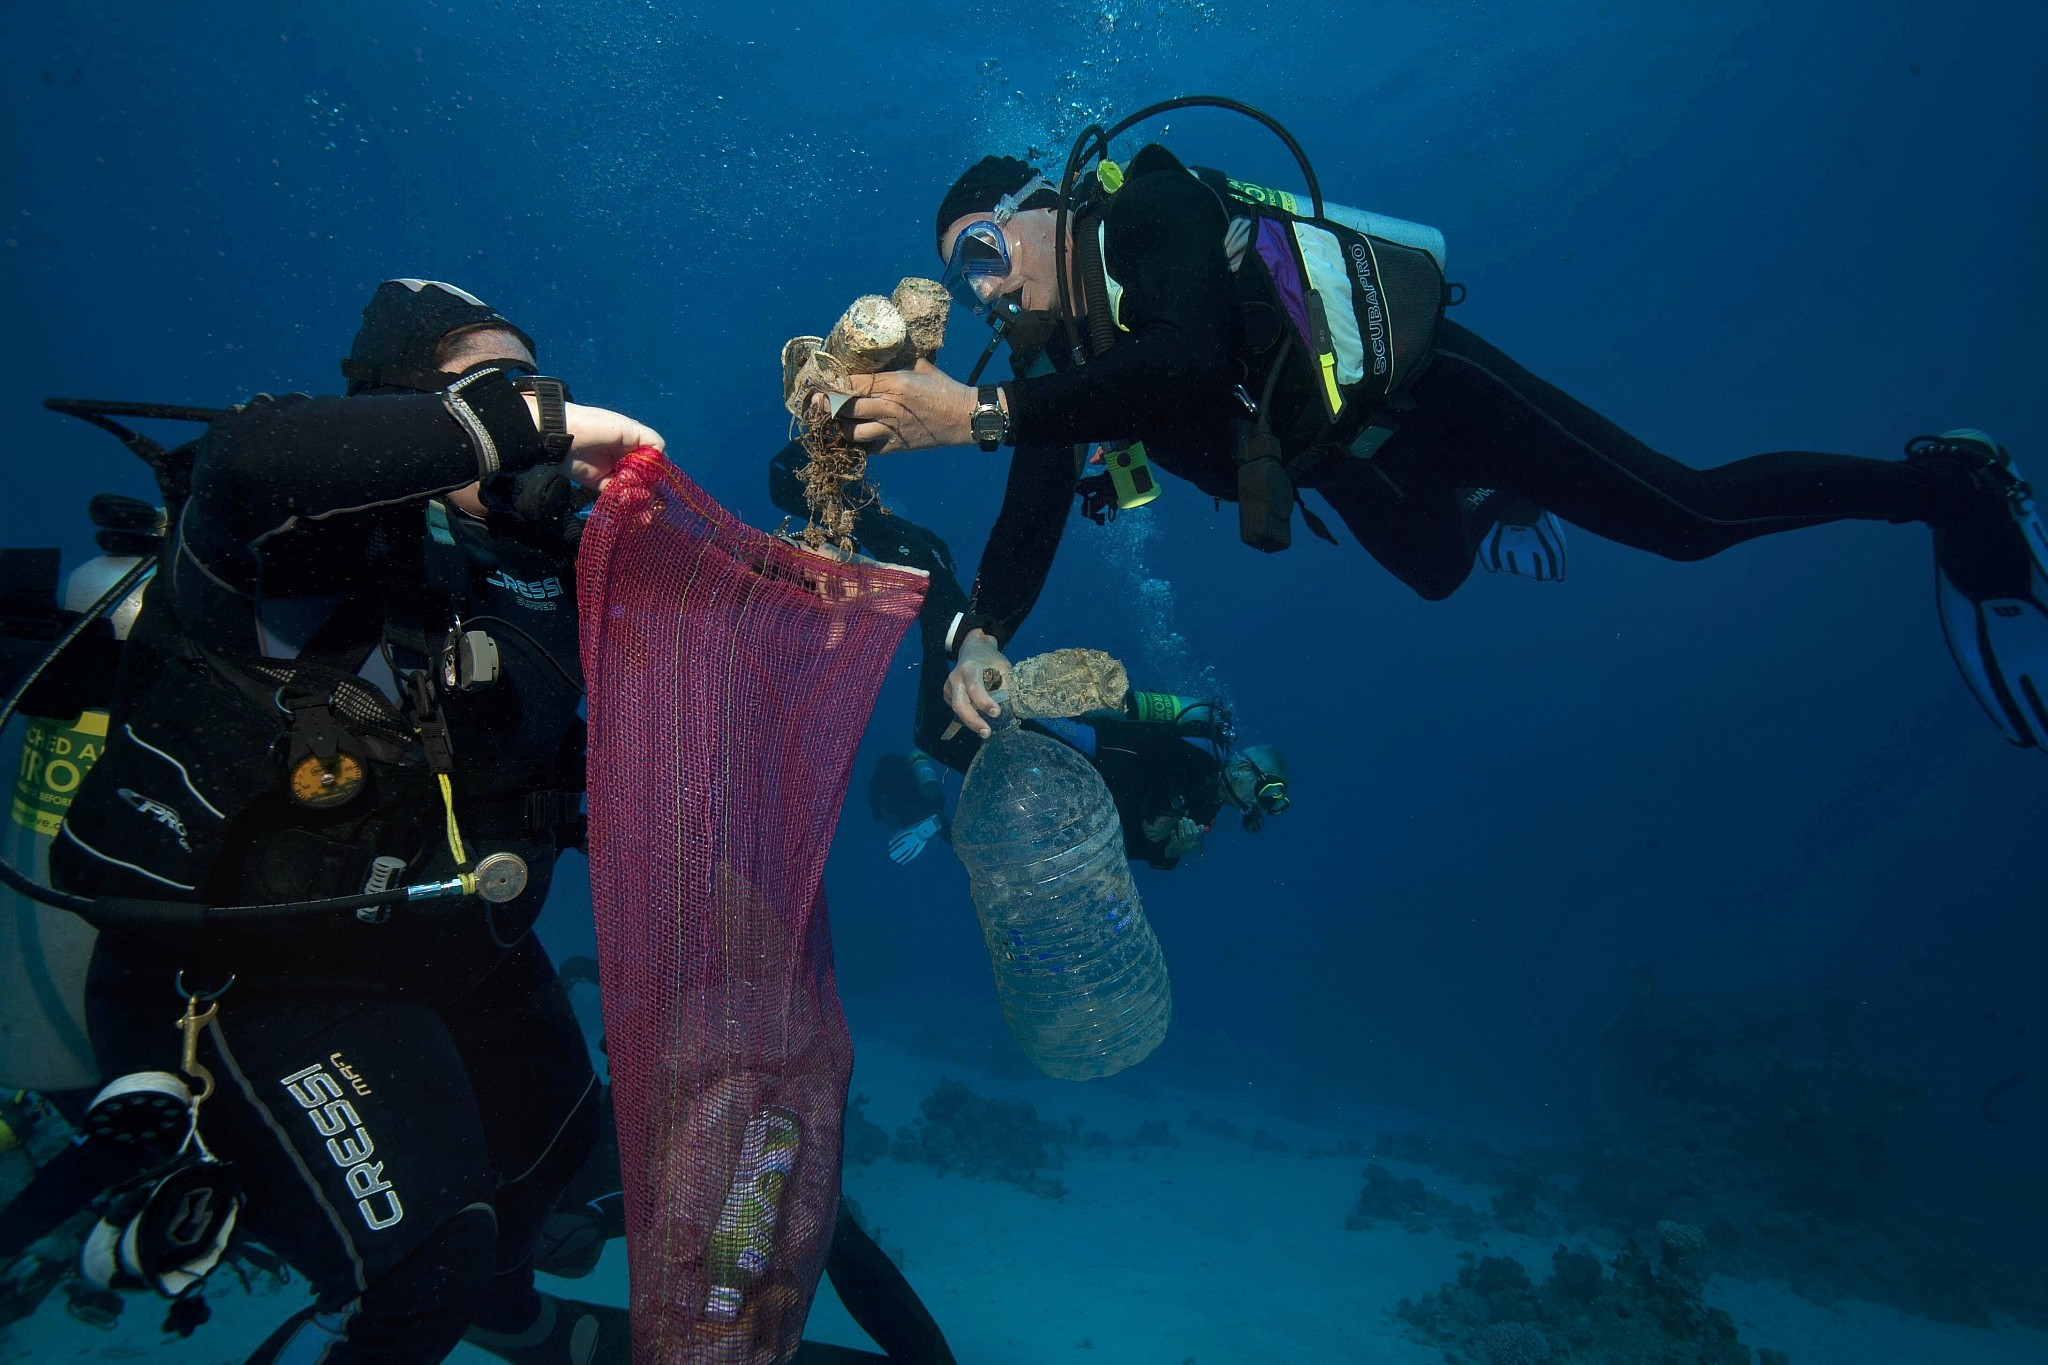 Egypt province banning single-use plastics to clean up Red Sea | The